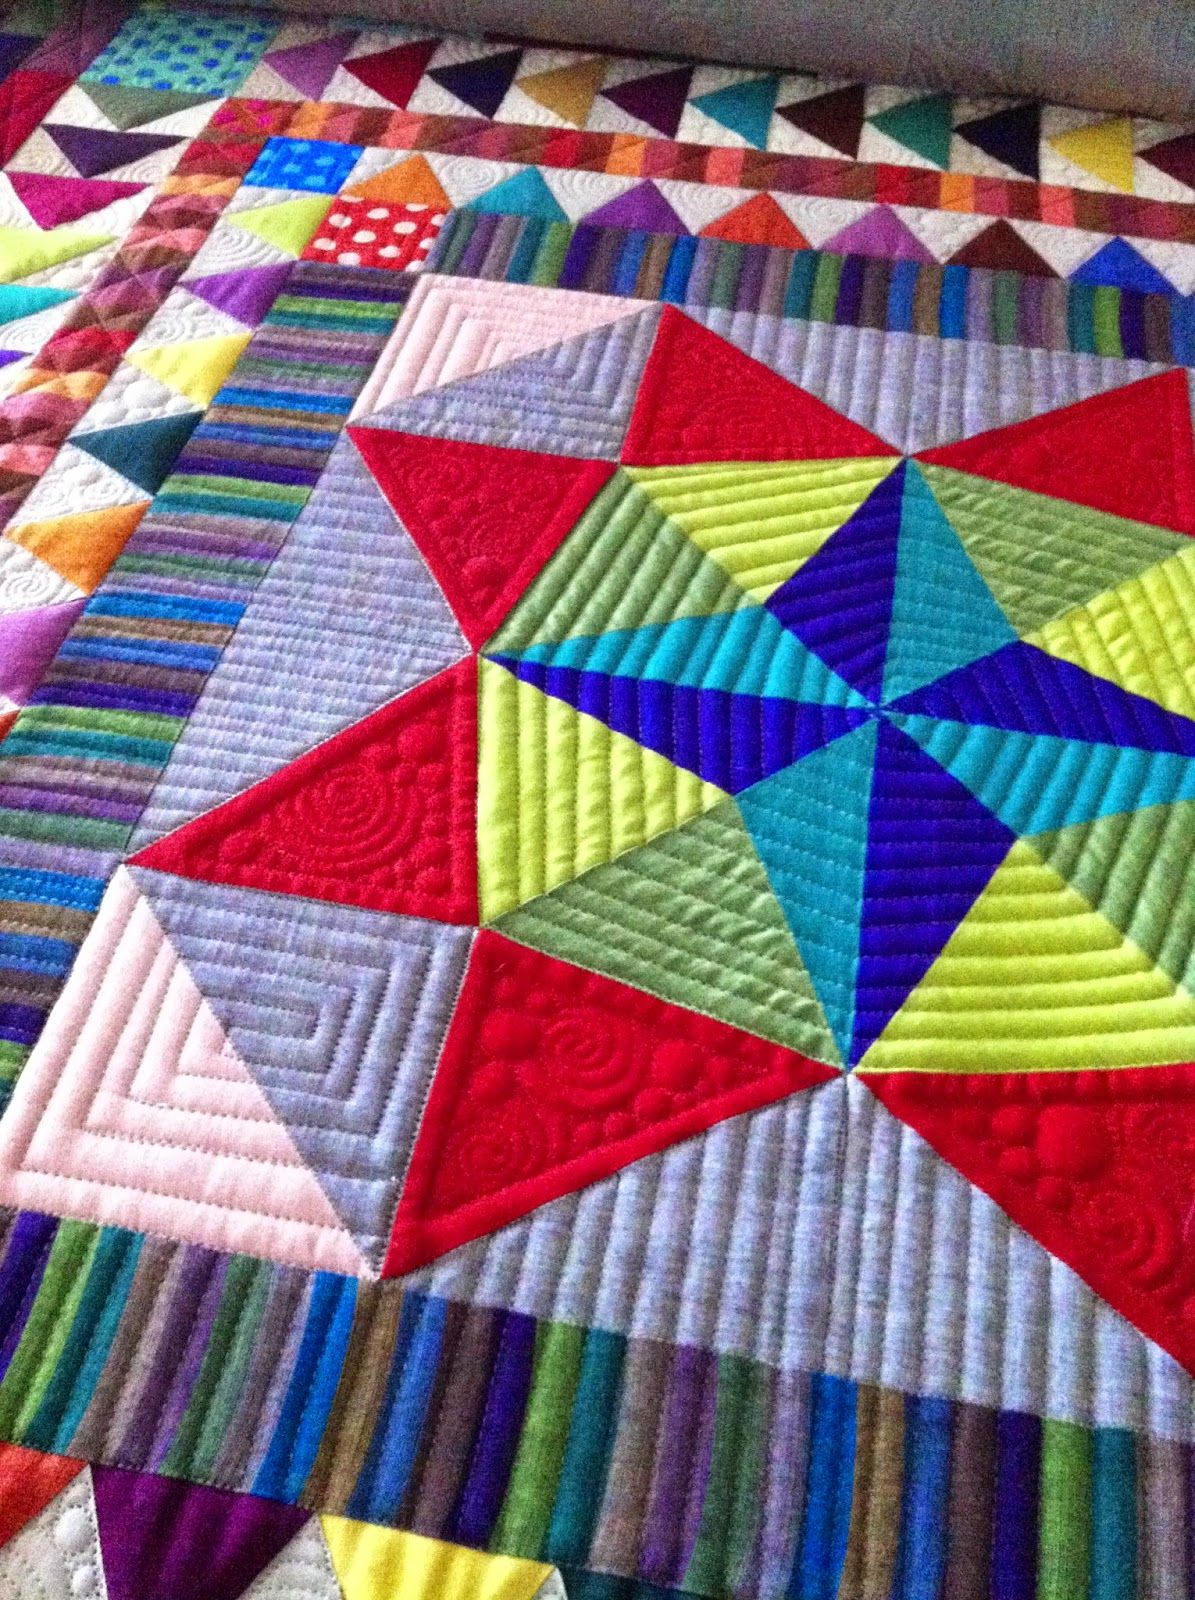 Krista Withers Quilting: The lure of the Medallion | Quilting ... : patchwork quilt meaning - Adamdwight.com